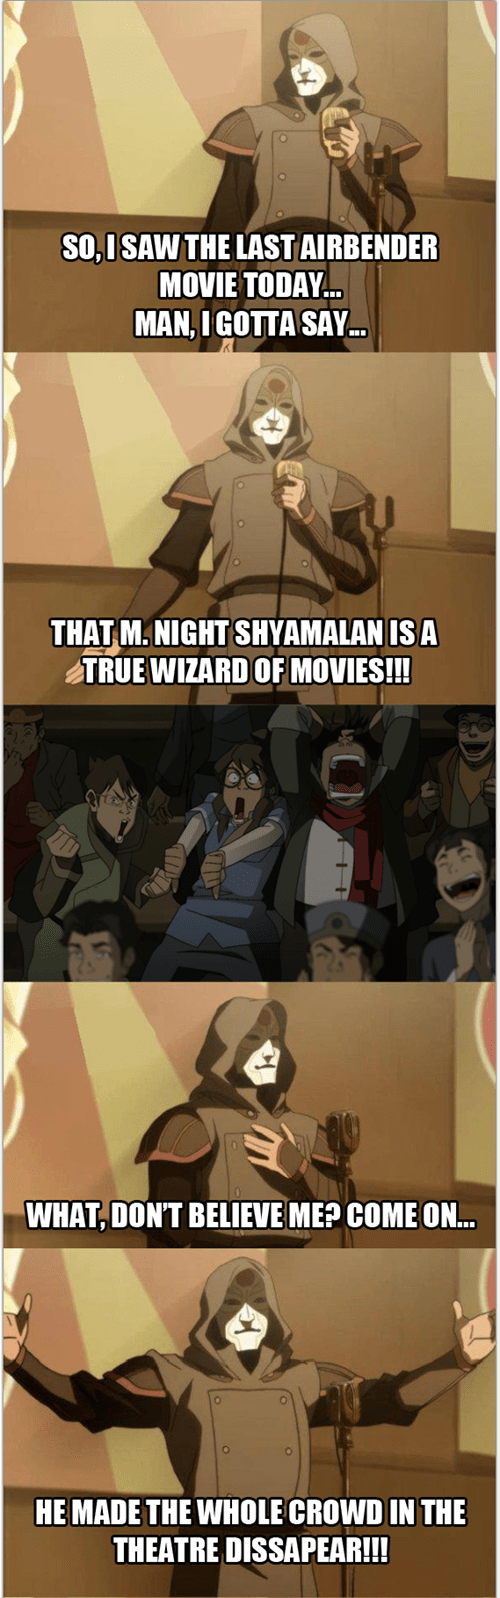 m night shyamalan,Avatar the Last Airbender,cartoons,Avatar,bad joke Amon,korra